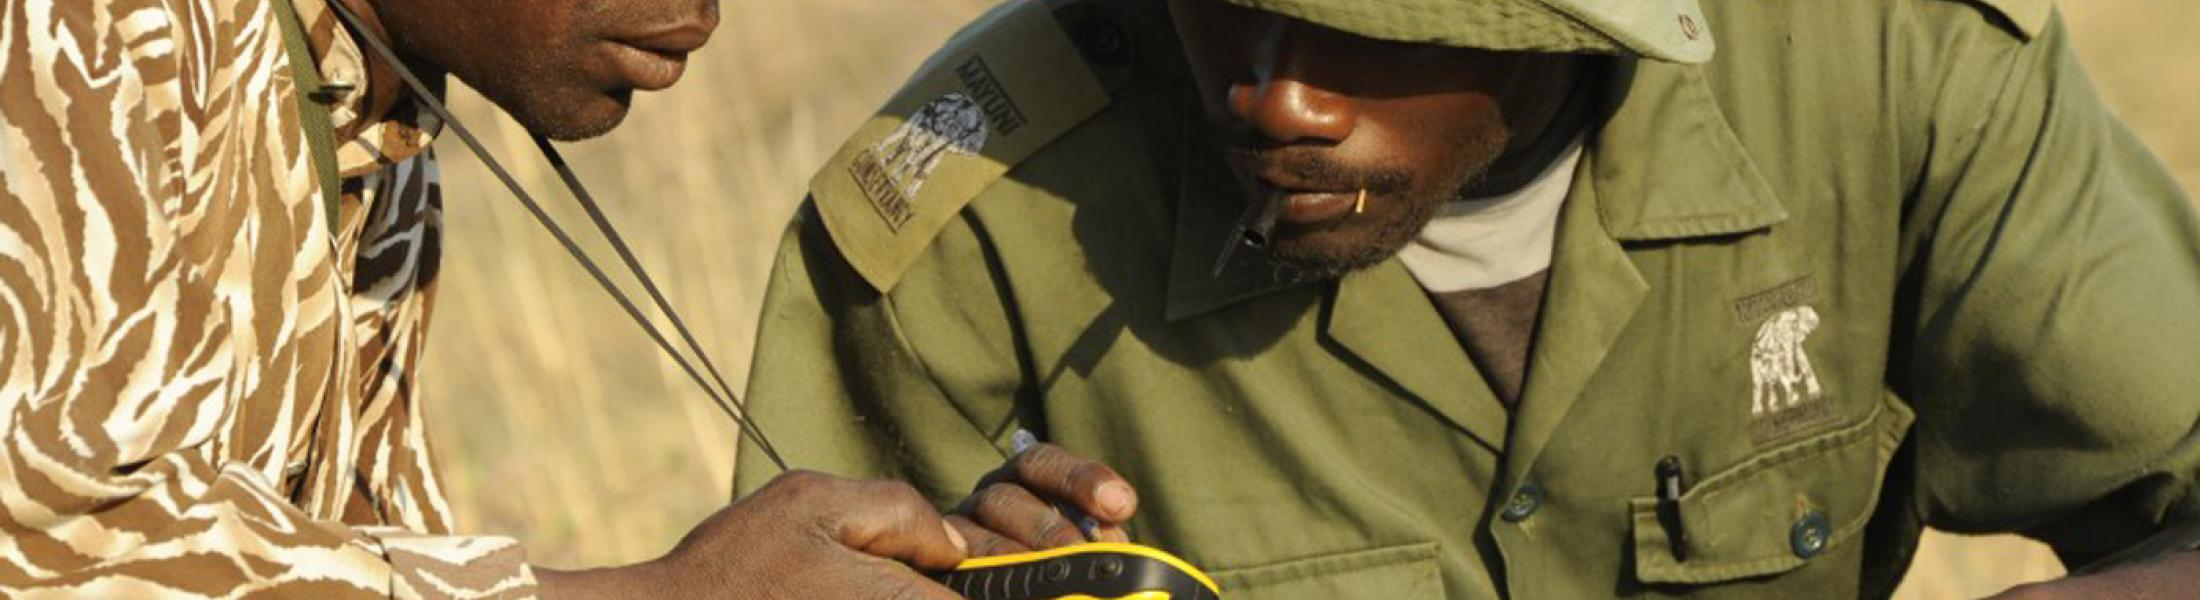 Two men look intently at a GPS unit.